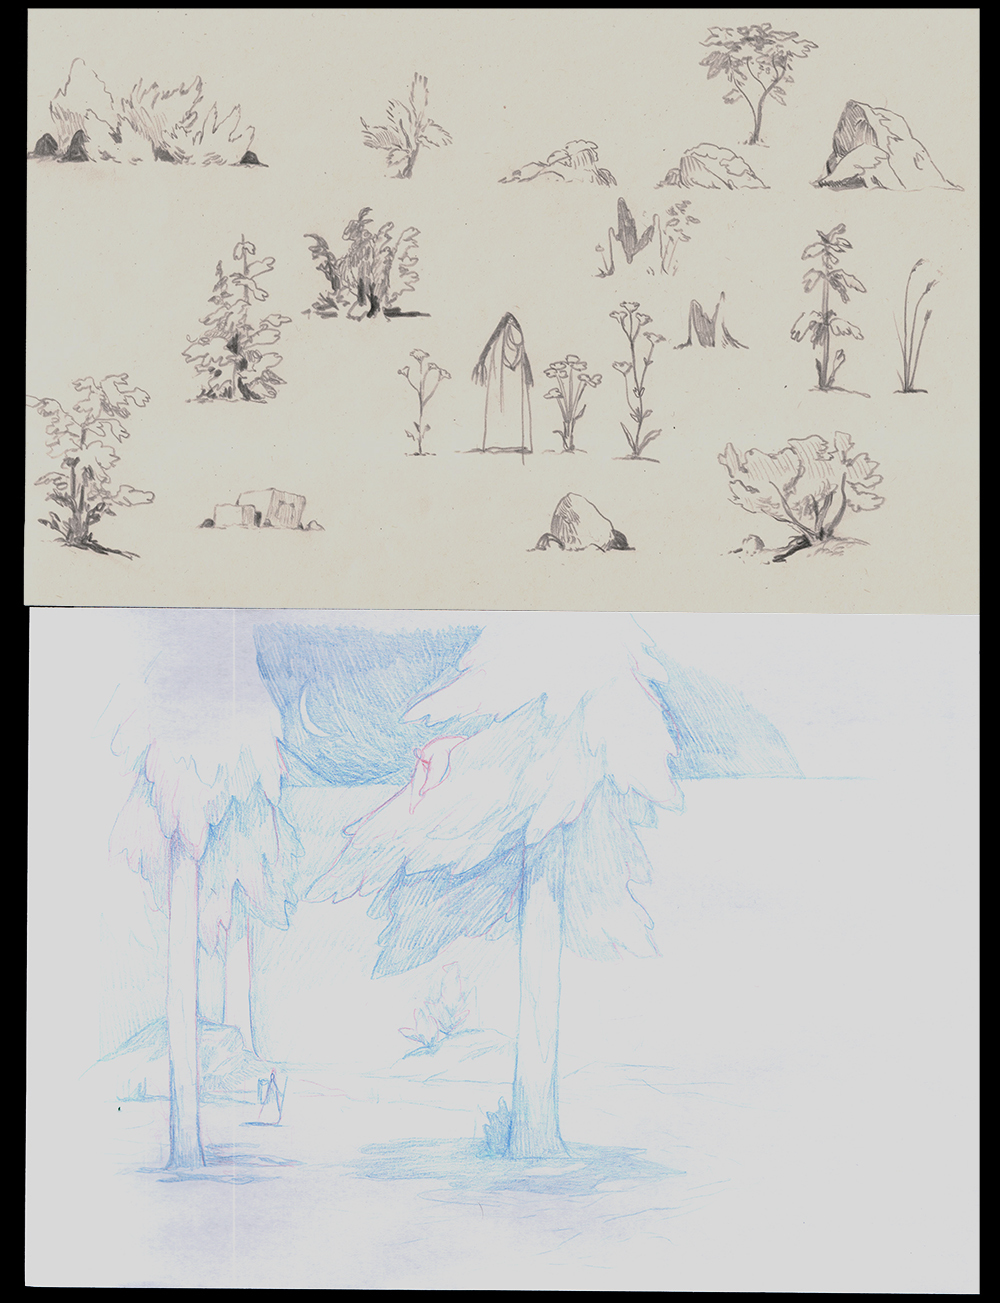 Book of Travels Story Guide + Walkthrough - Overview - Sketches from the Attic - A5DF839